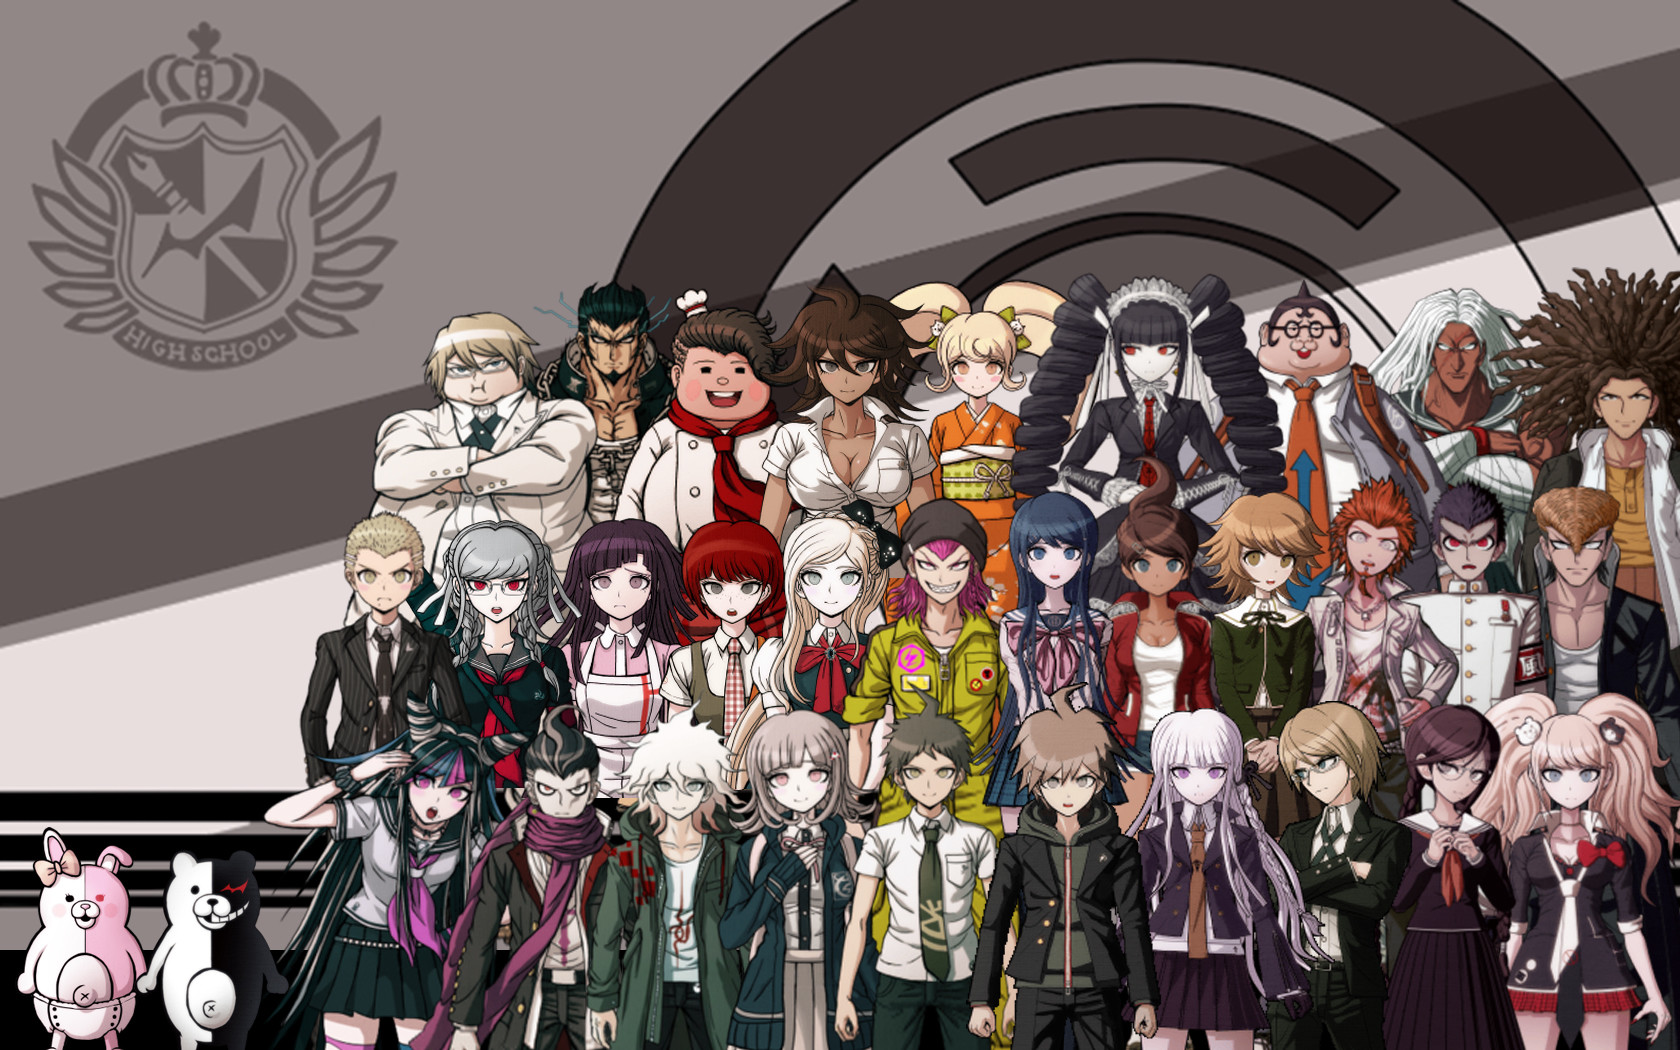 Matt Rampino Dangan Ronpa 1 and 2 Wallpaper